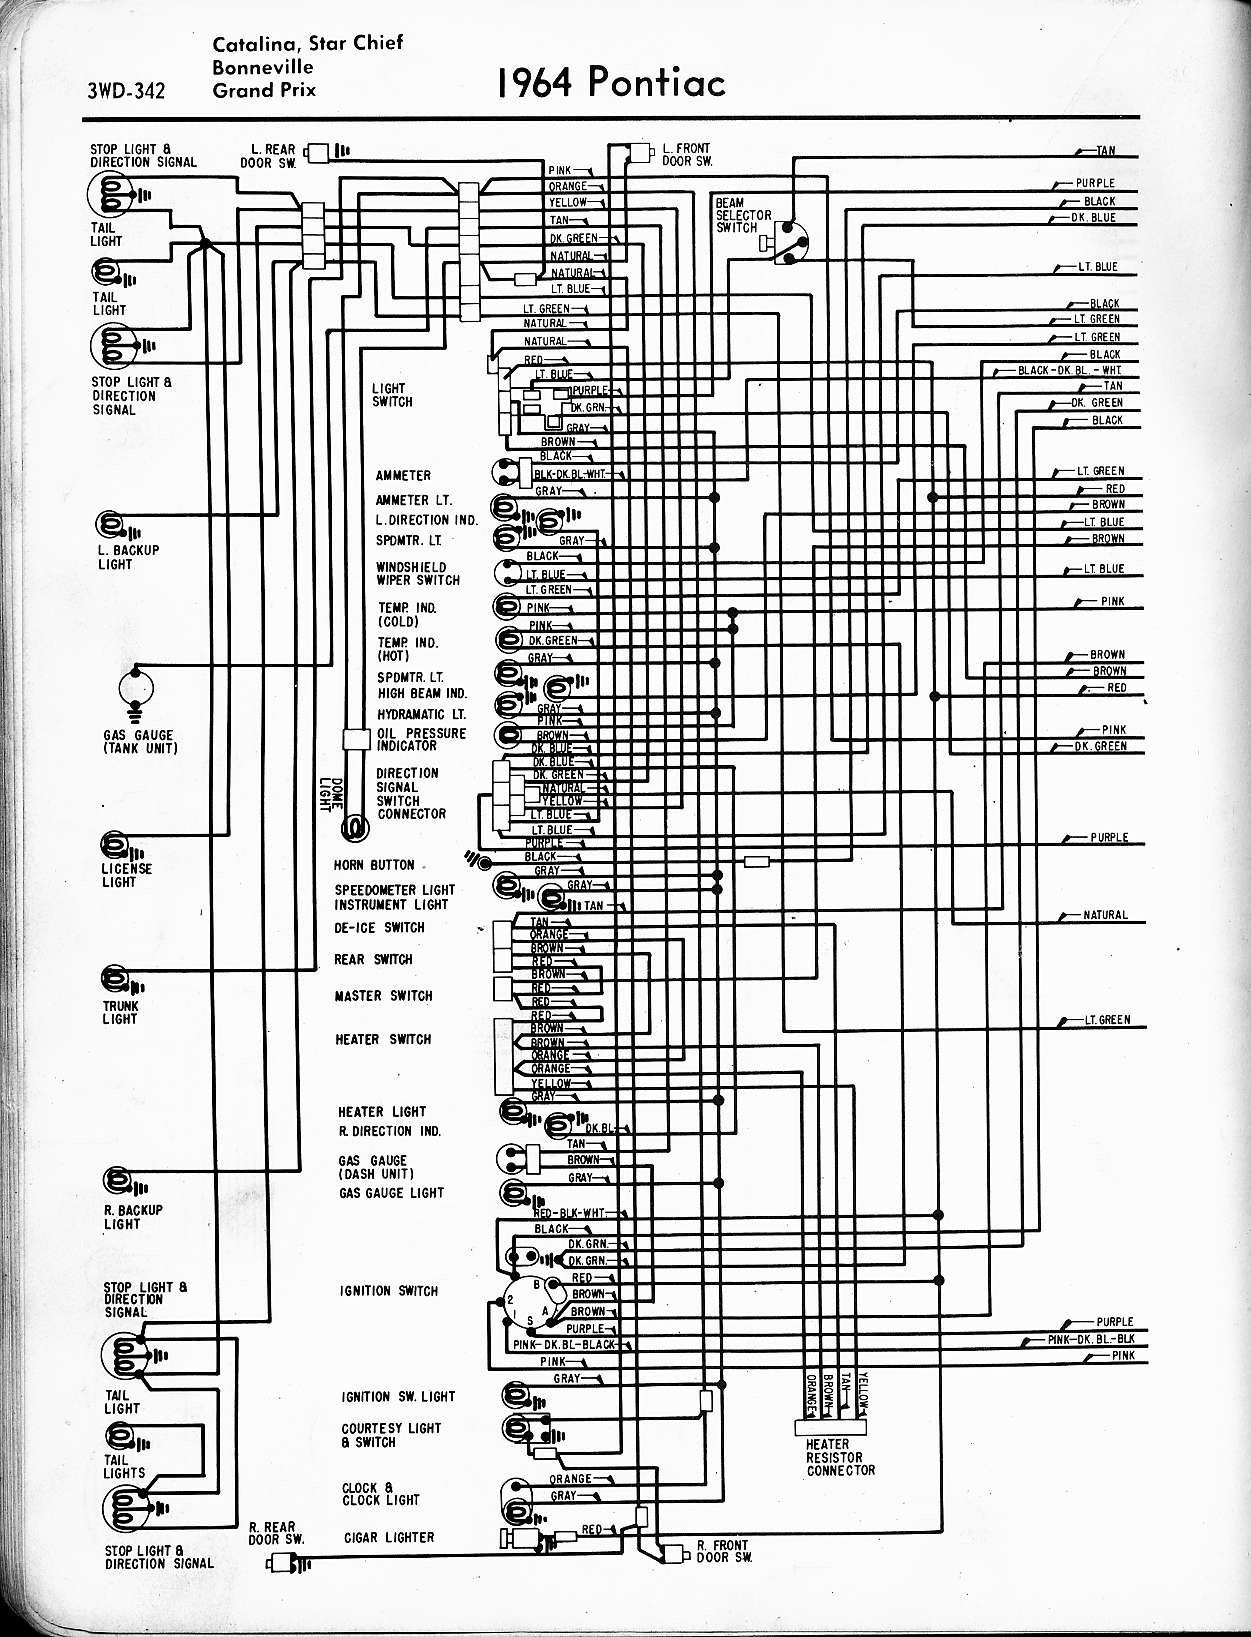 1975 Sportster Wiring Diagram besides 1965 Mustang Wiring Diagrams as well 566468459354036294 besides 68 Corvette Vin Location as well Index. on 1964 gto dash wiring diagram